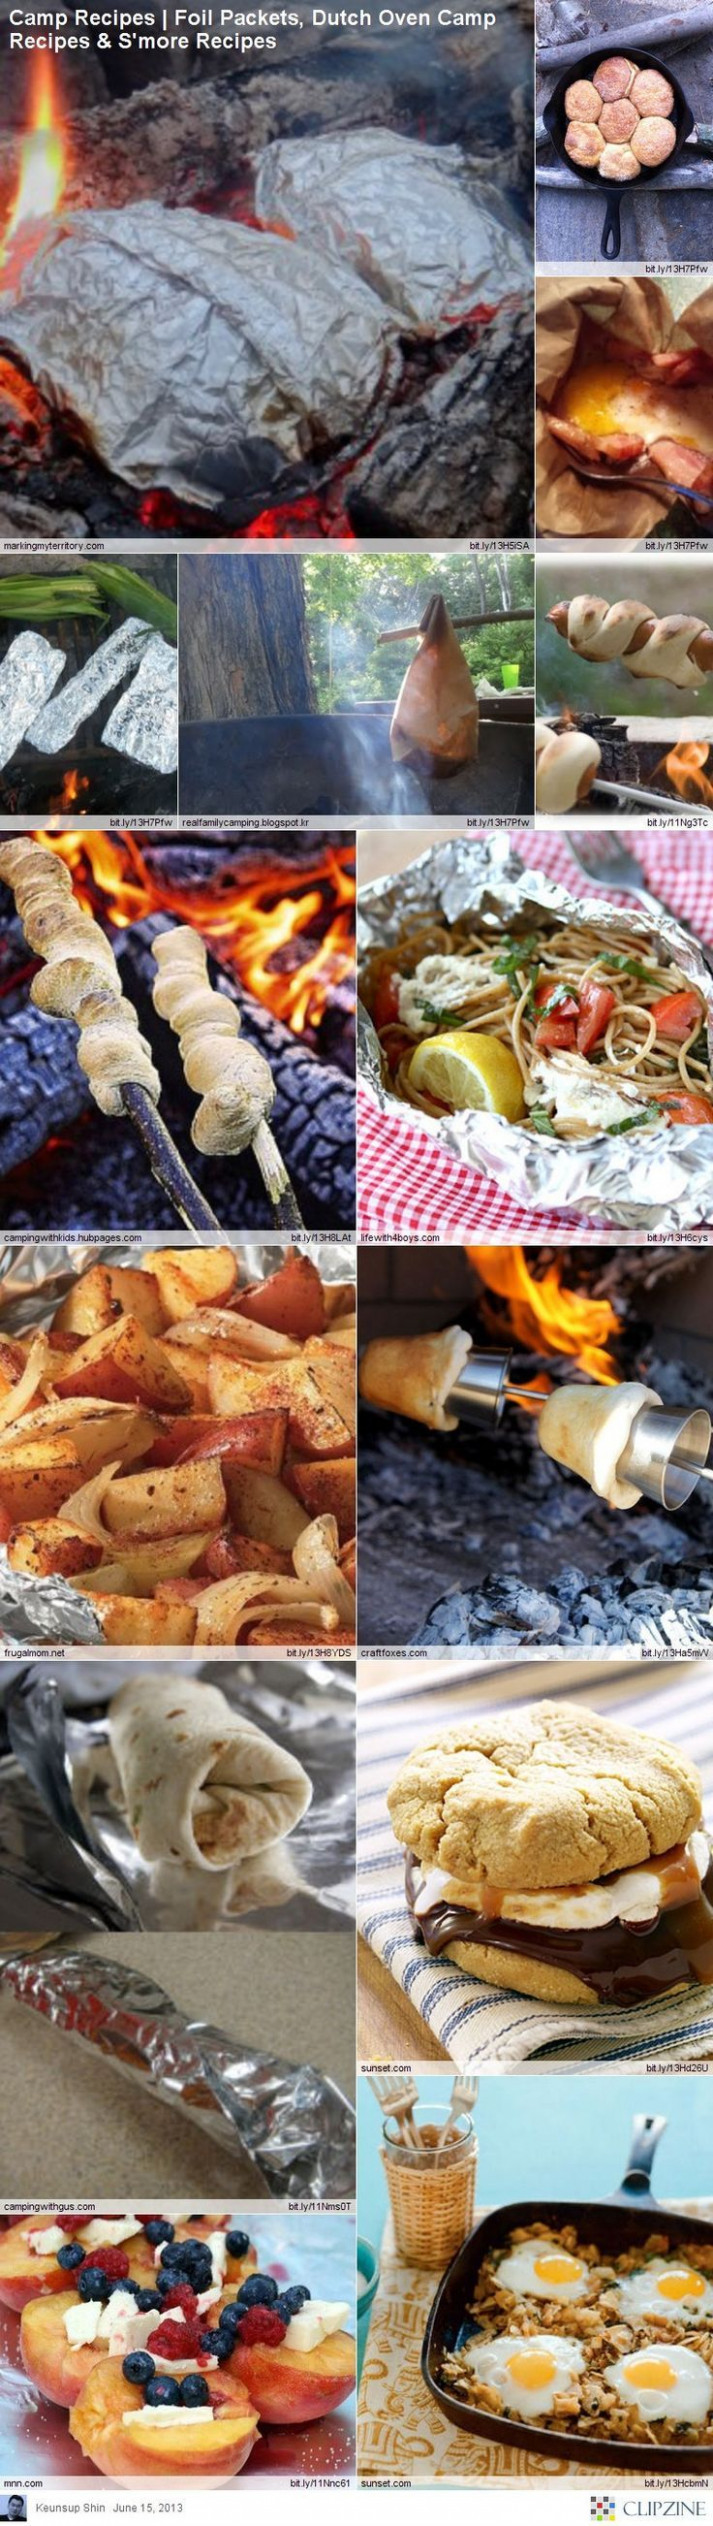 17 Best Images About Recipes: Camping On Pinterest   Easy ..